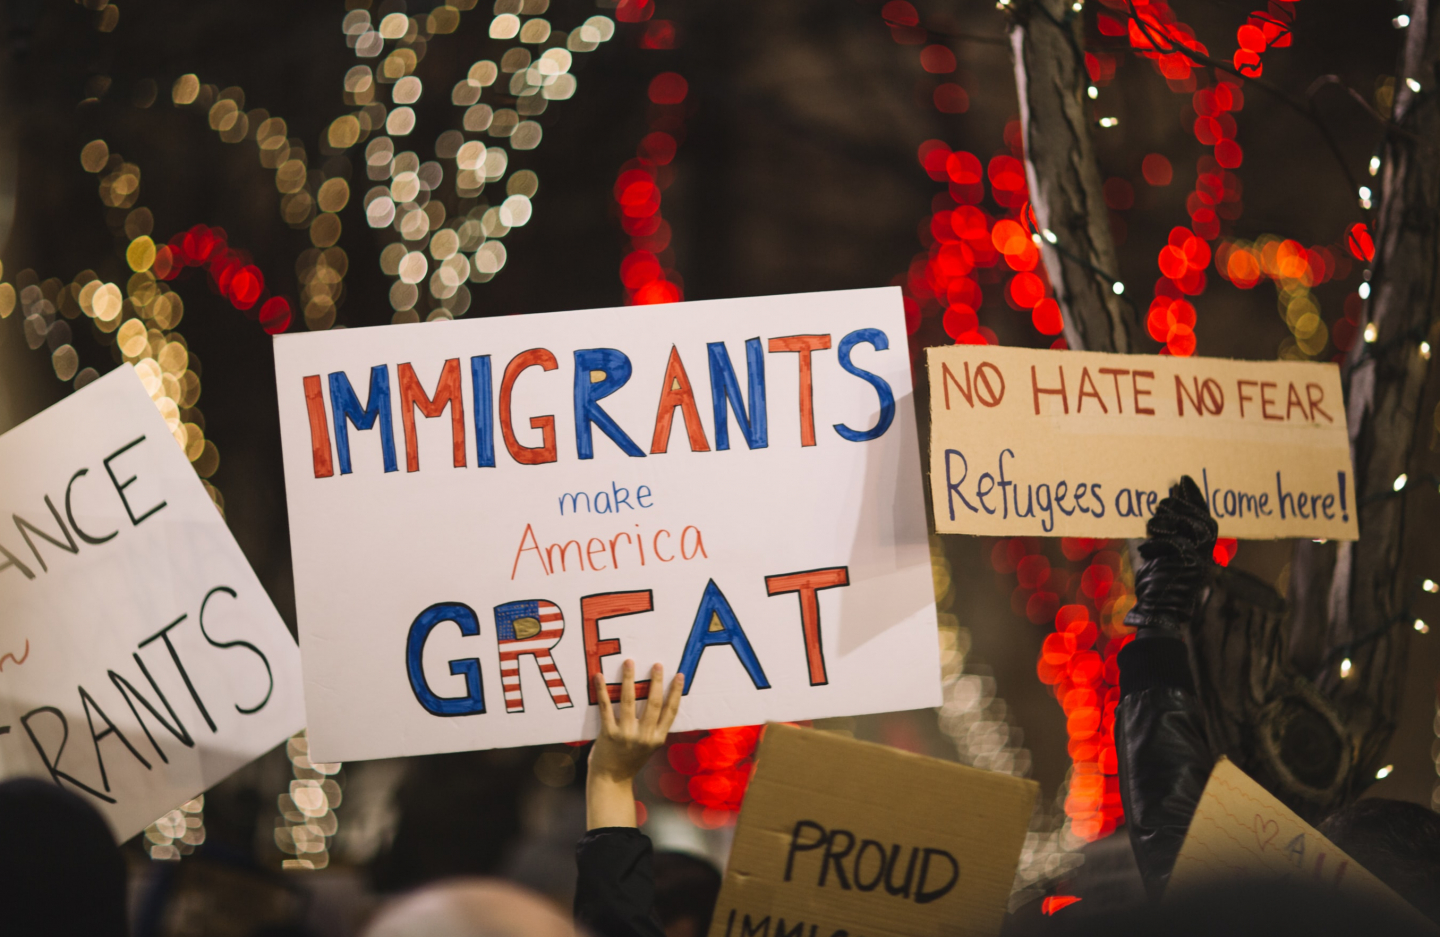 Christians should have a welcoming posture toward immigrants